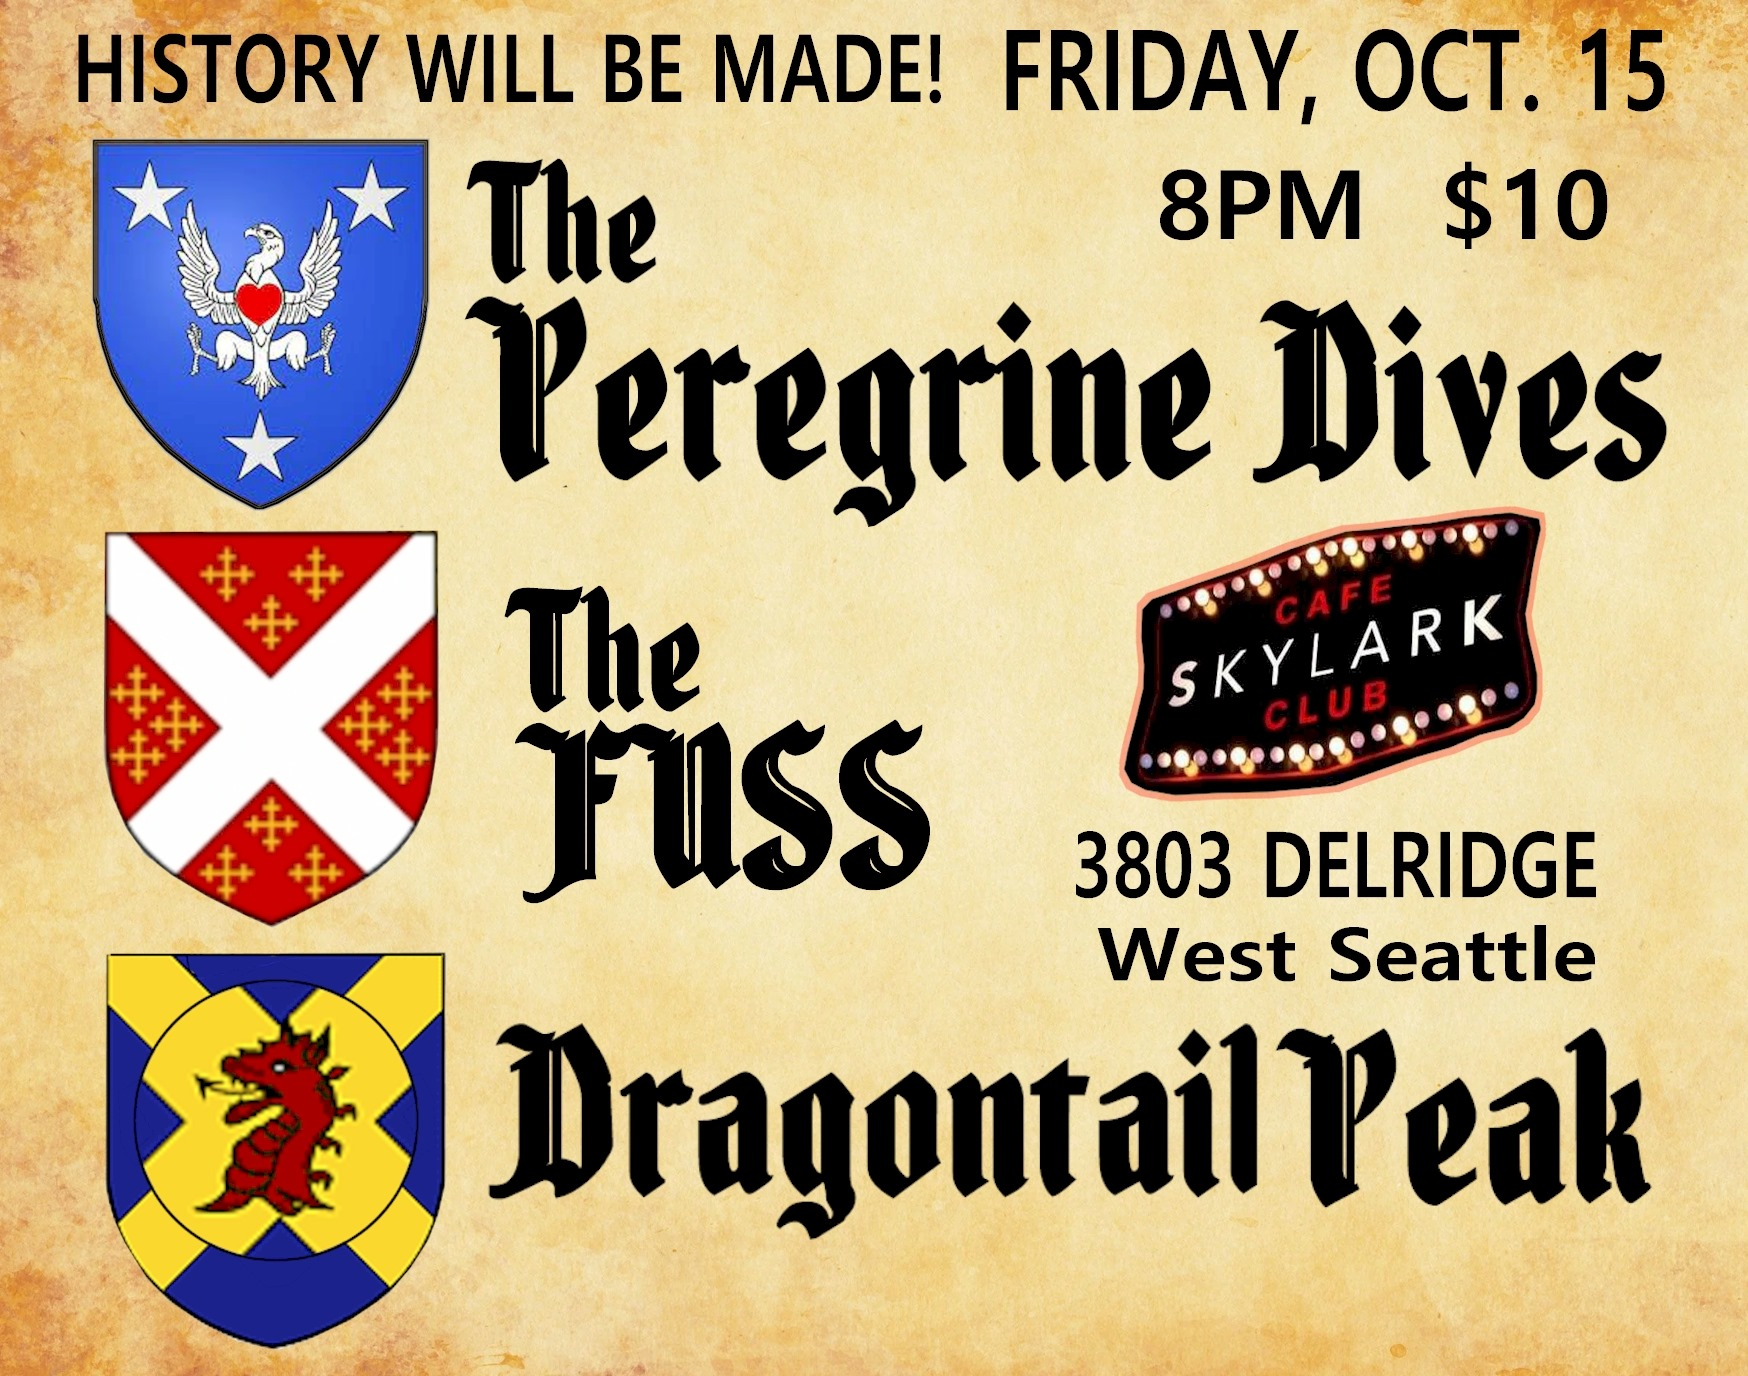 Dragontail Peak: Original Northwest rock music; Eclectic power pop, whimsy, sarcastic and poignant. The FUSS: A high-intensity rock 'n' roll band. Doors at 7:00 Music at 8:00 $10 21+